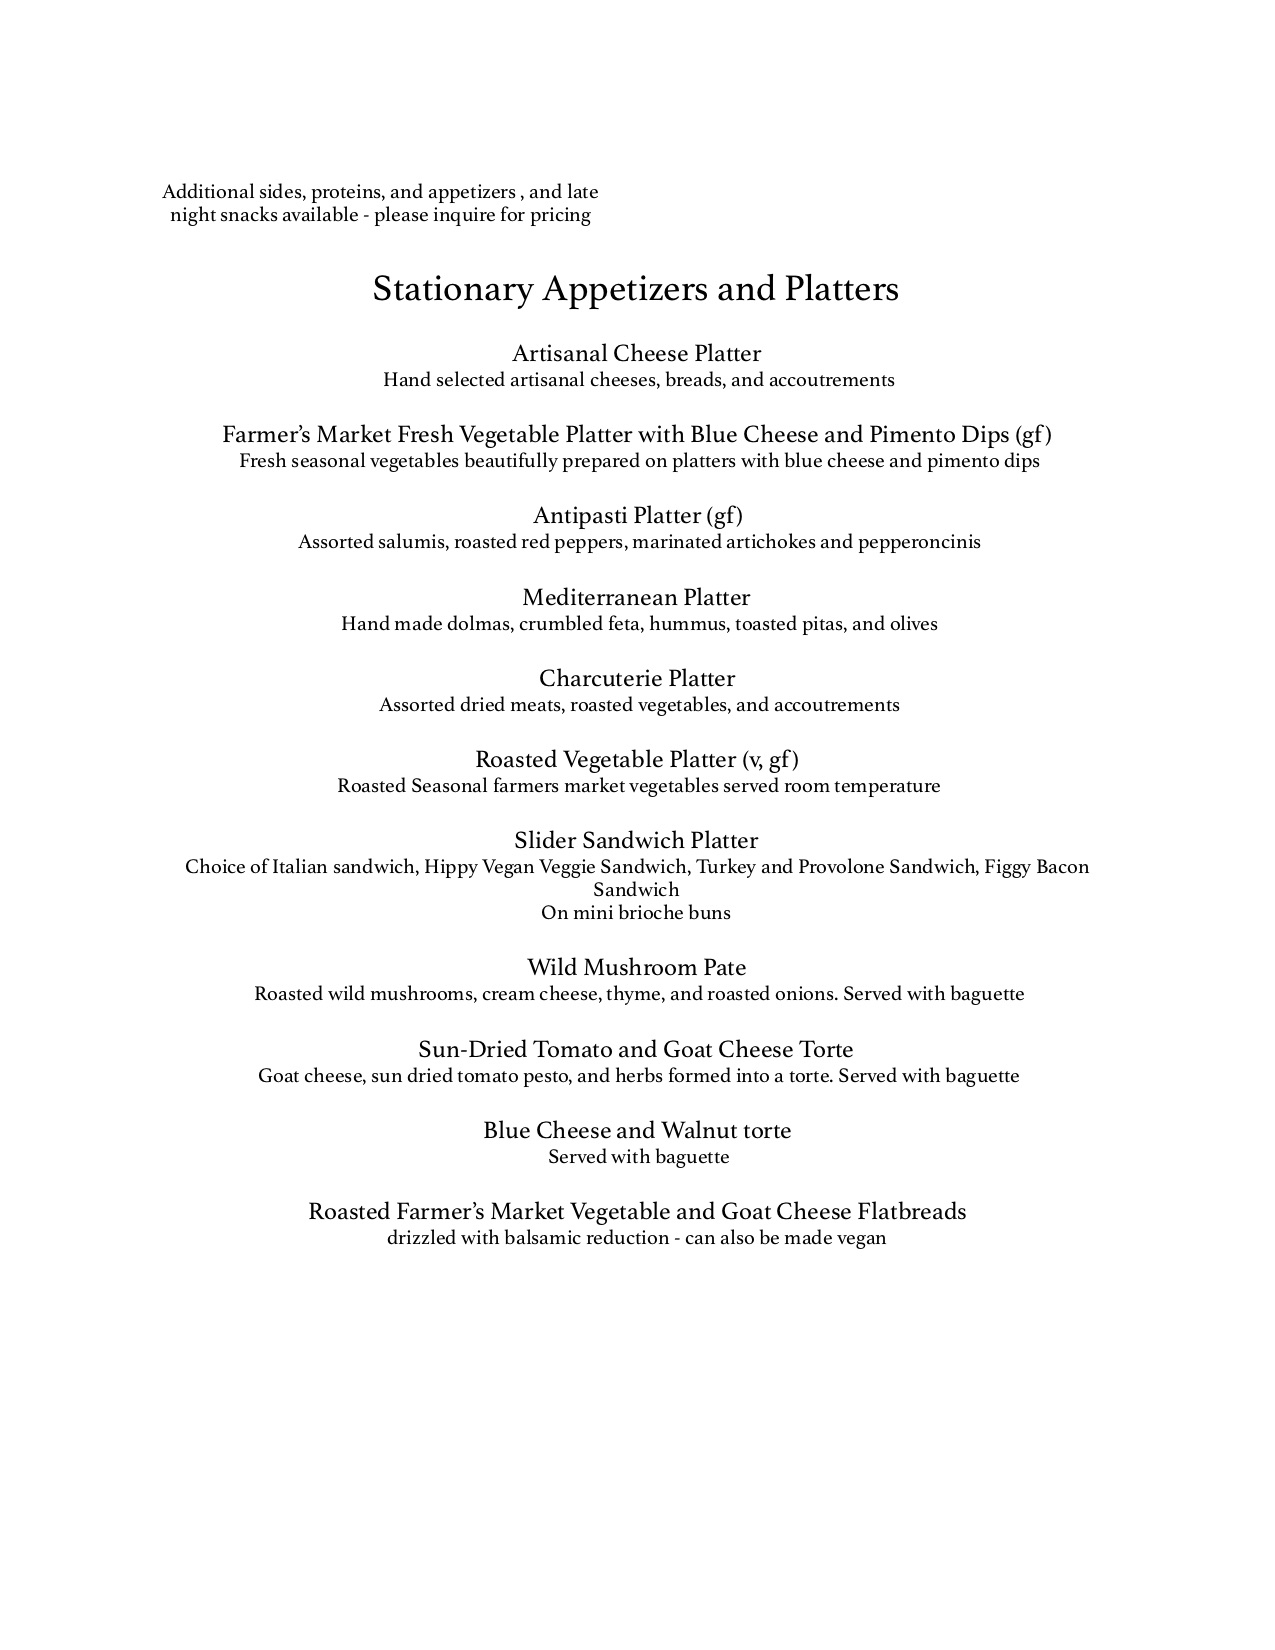 Spotted Hen Full Service and Wedding Menu 2.jpg